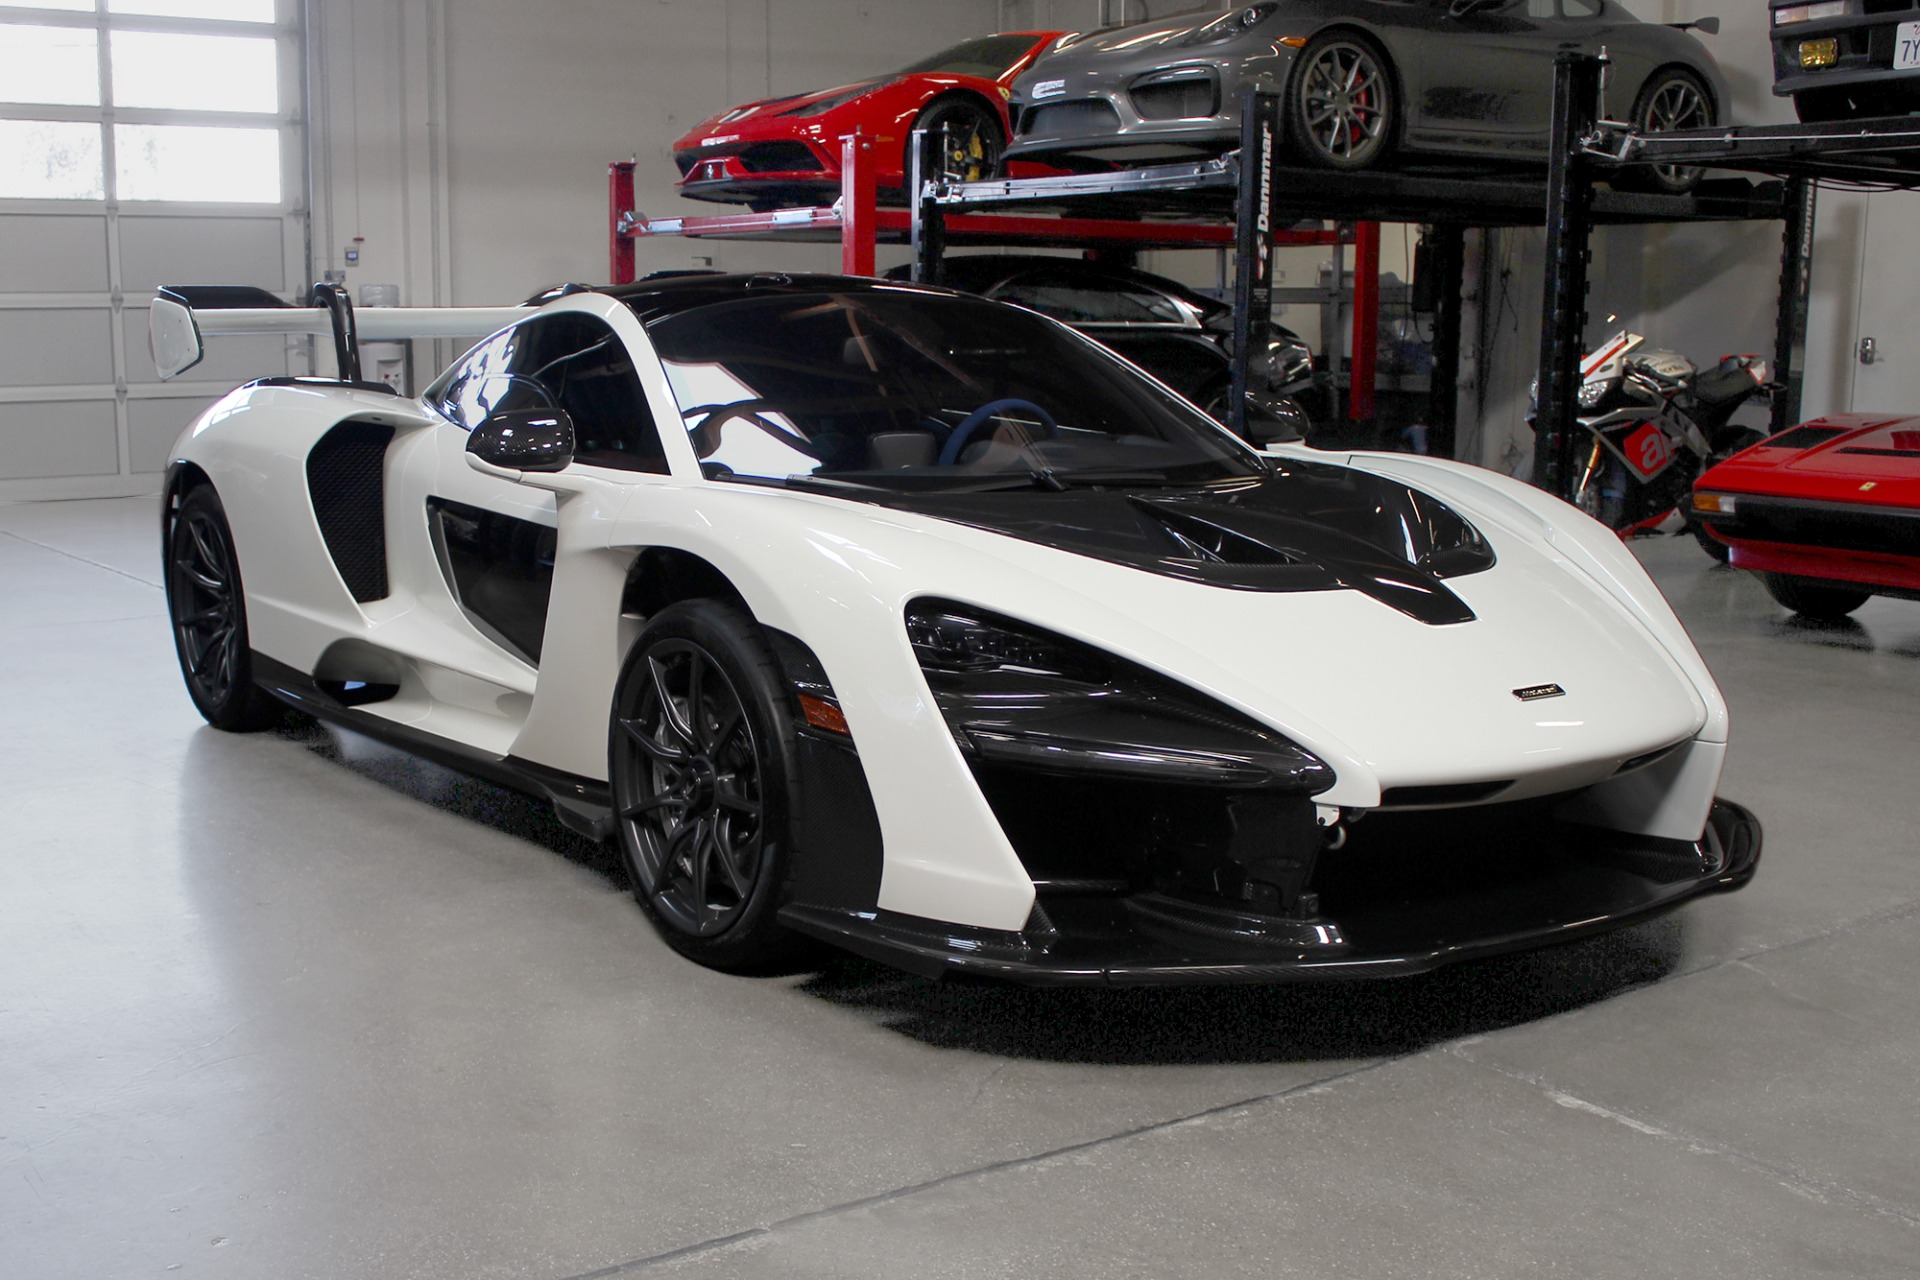 Used 2019 McLaren Senna for sale Sold at San Francisco Sports Cars in San Carlos CA 94070 1